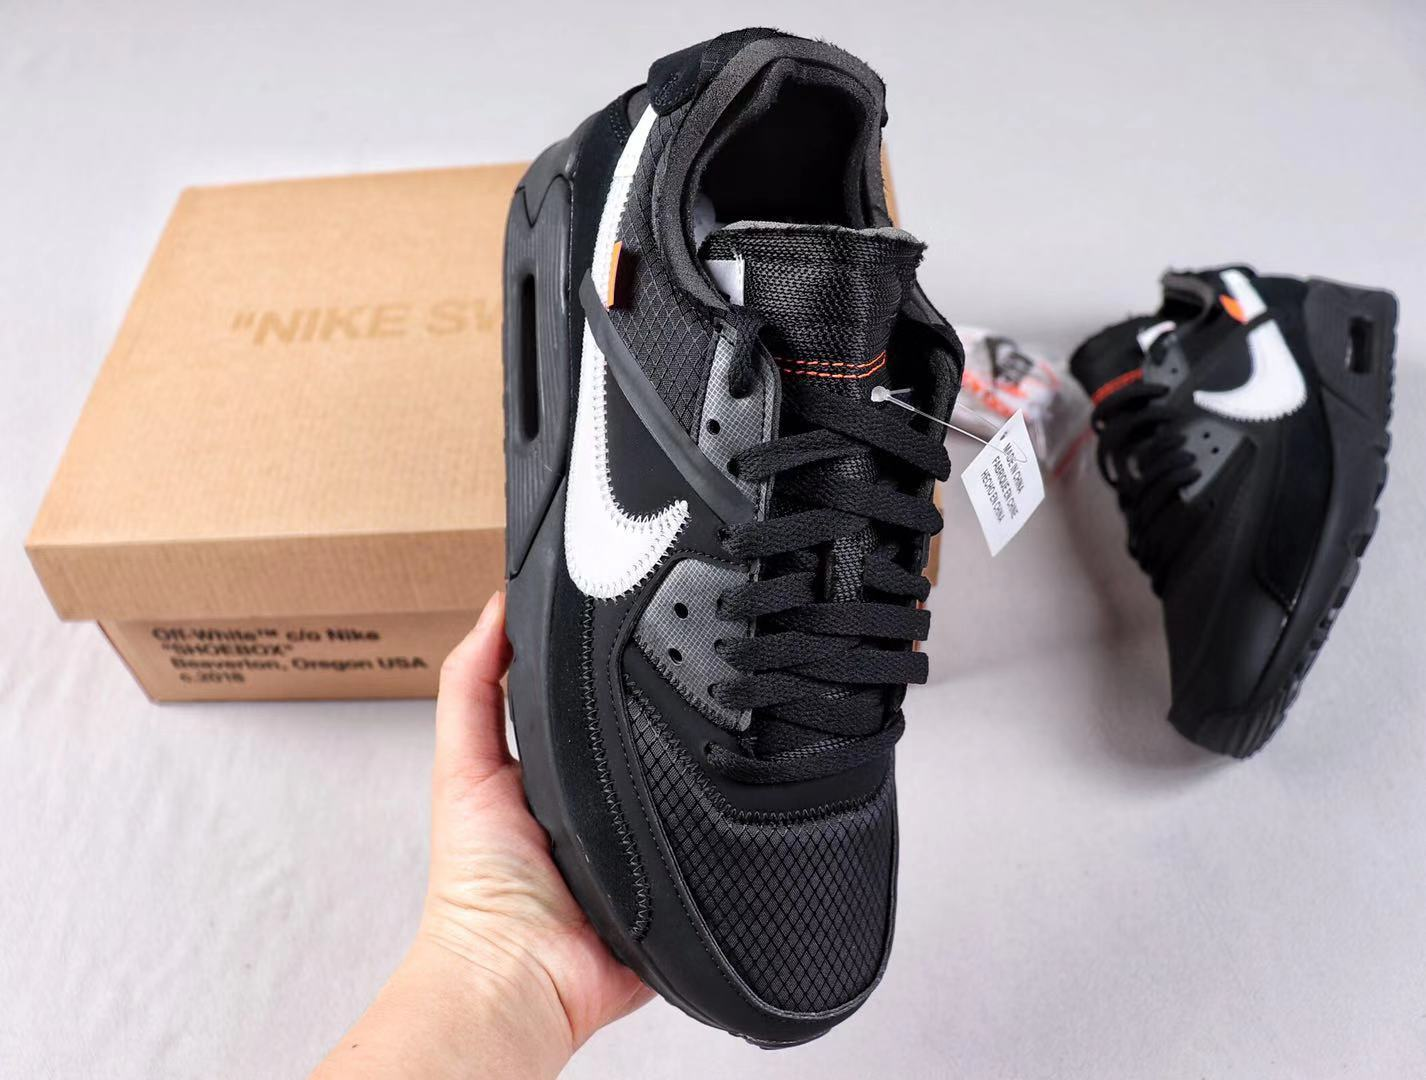 OFF-WHITE x Nike Air Max 90 Black/Cone-White Sneakers In Stock AA7293-001